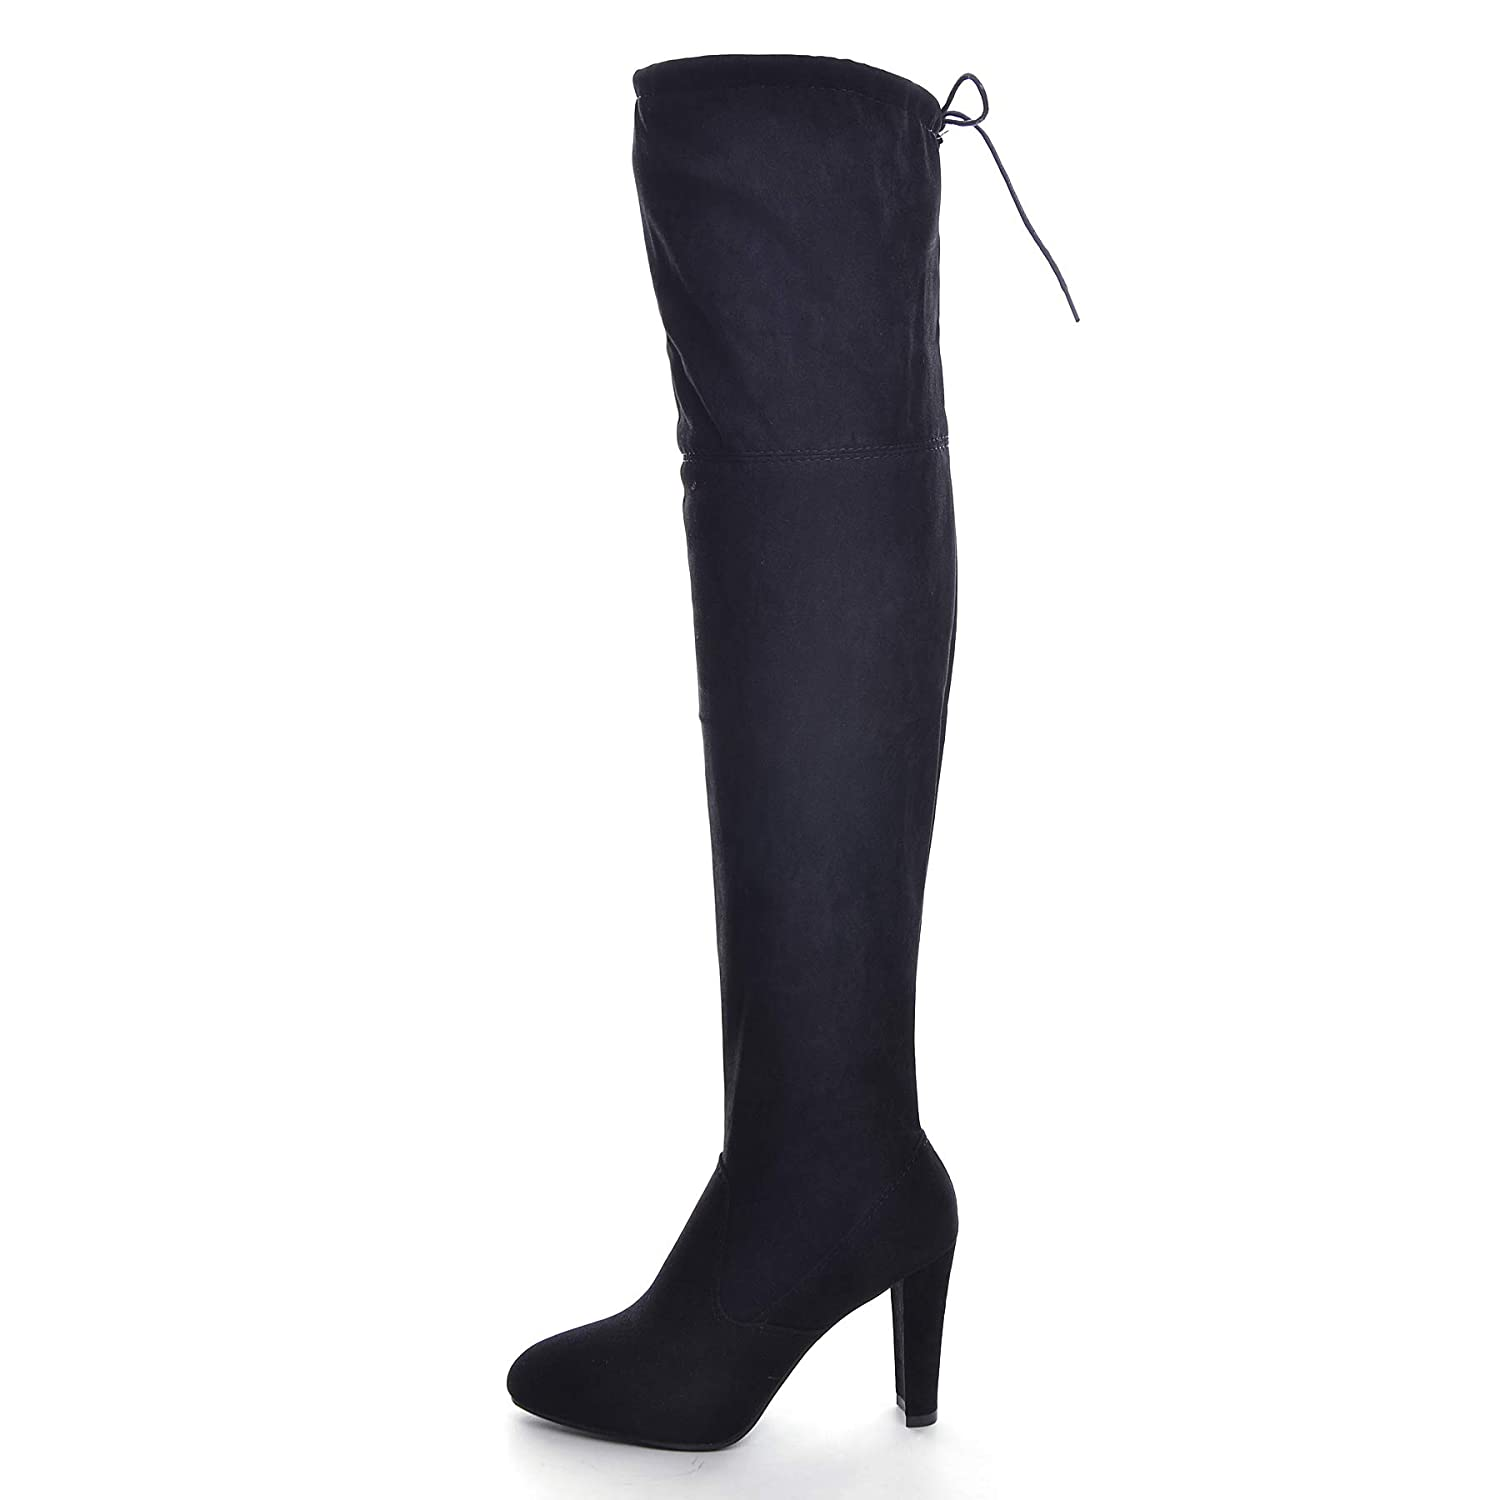 7b4a410271e25 VFDB Women Over The Knee Boots Thigh High Stretch Block Chunky Heel Faux  Suede Booties